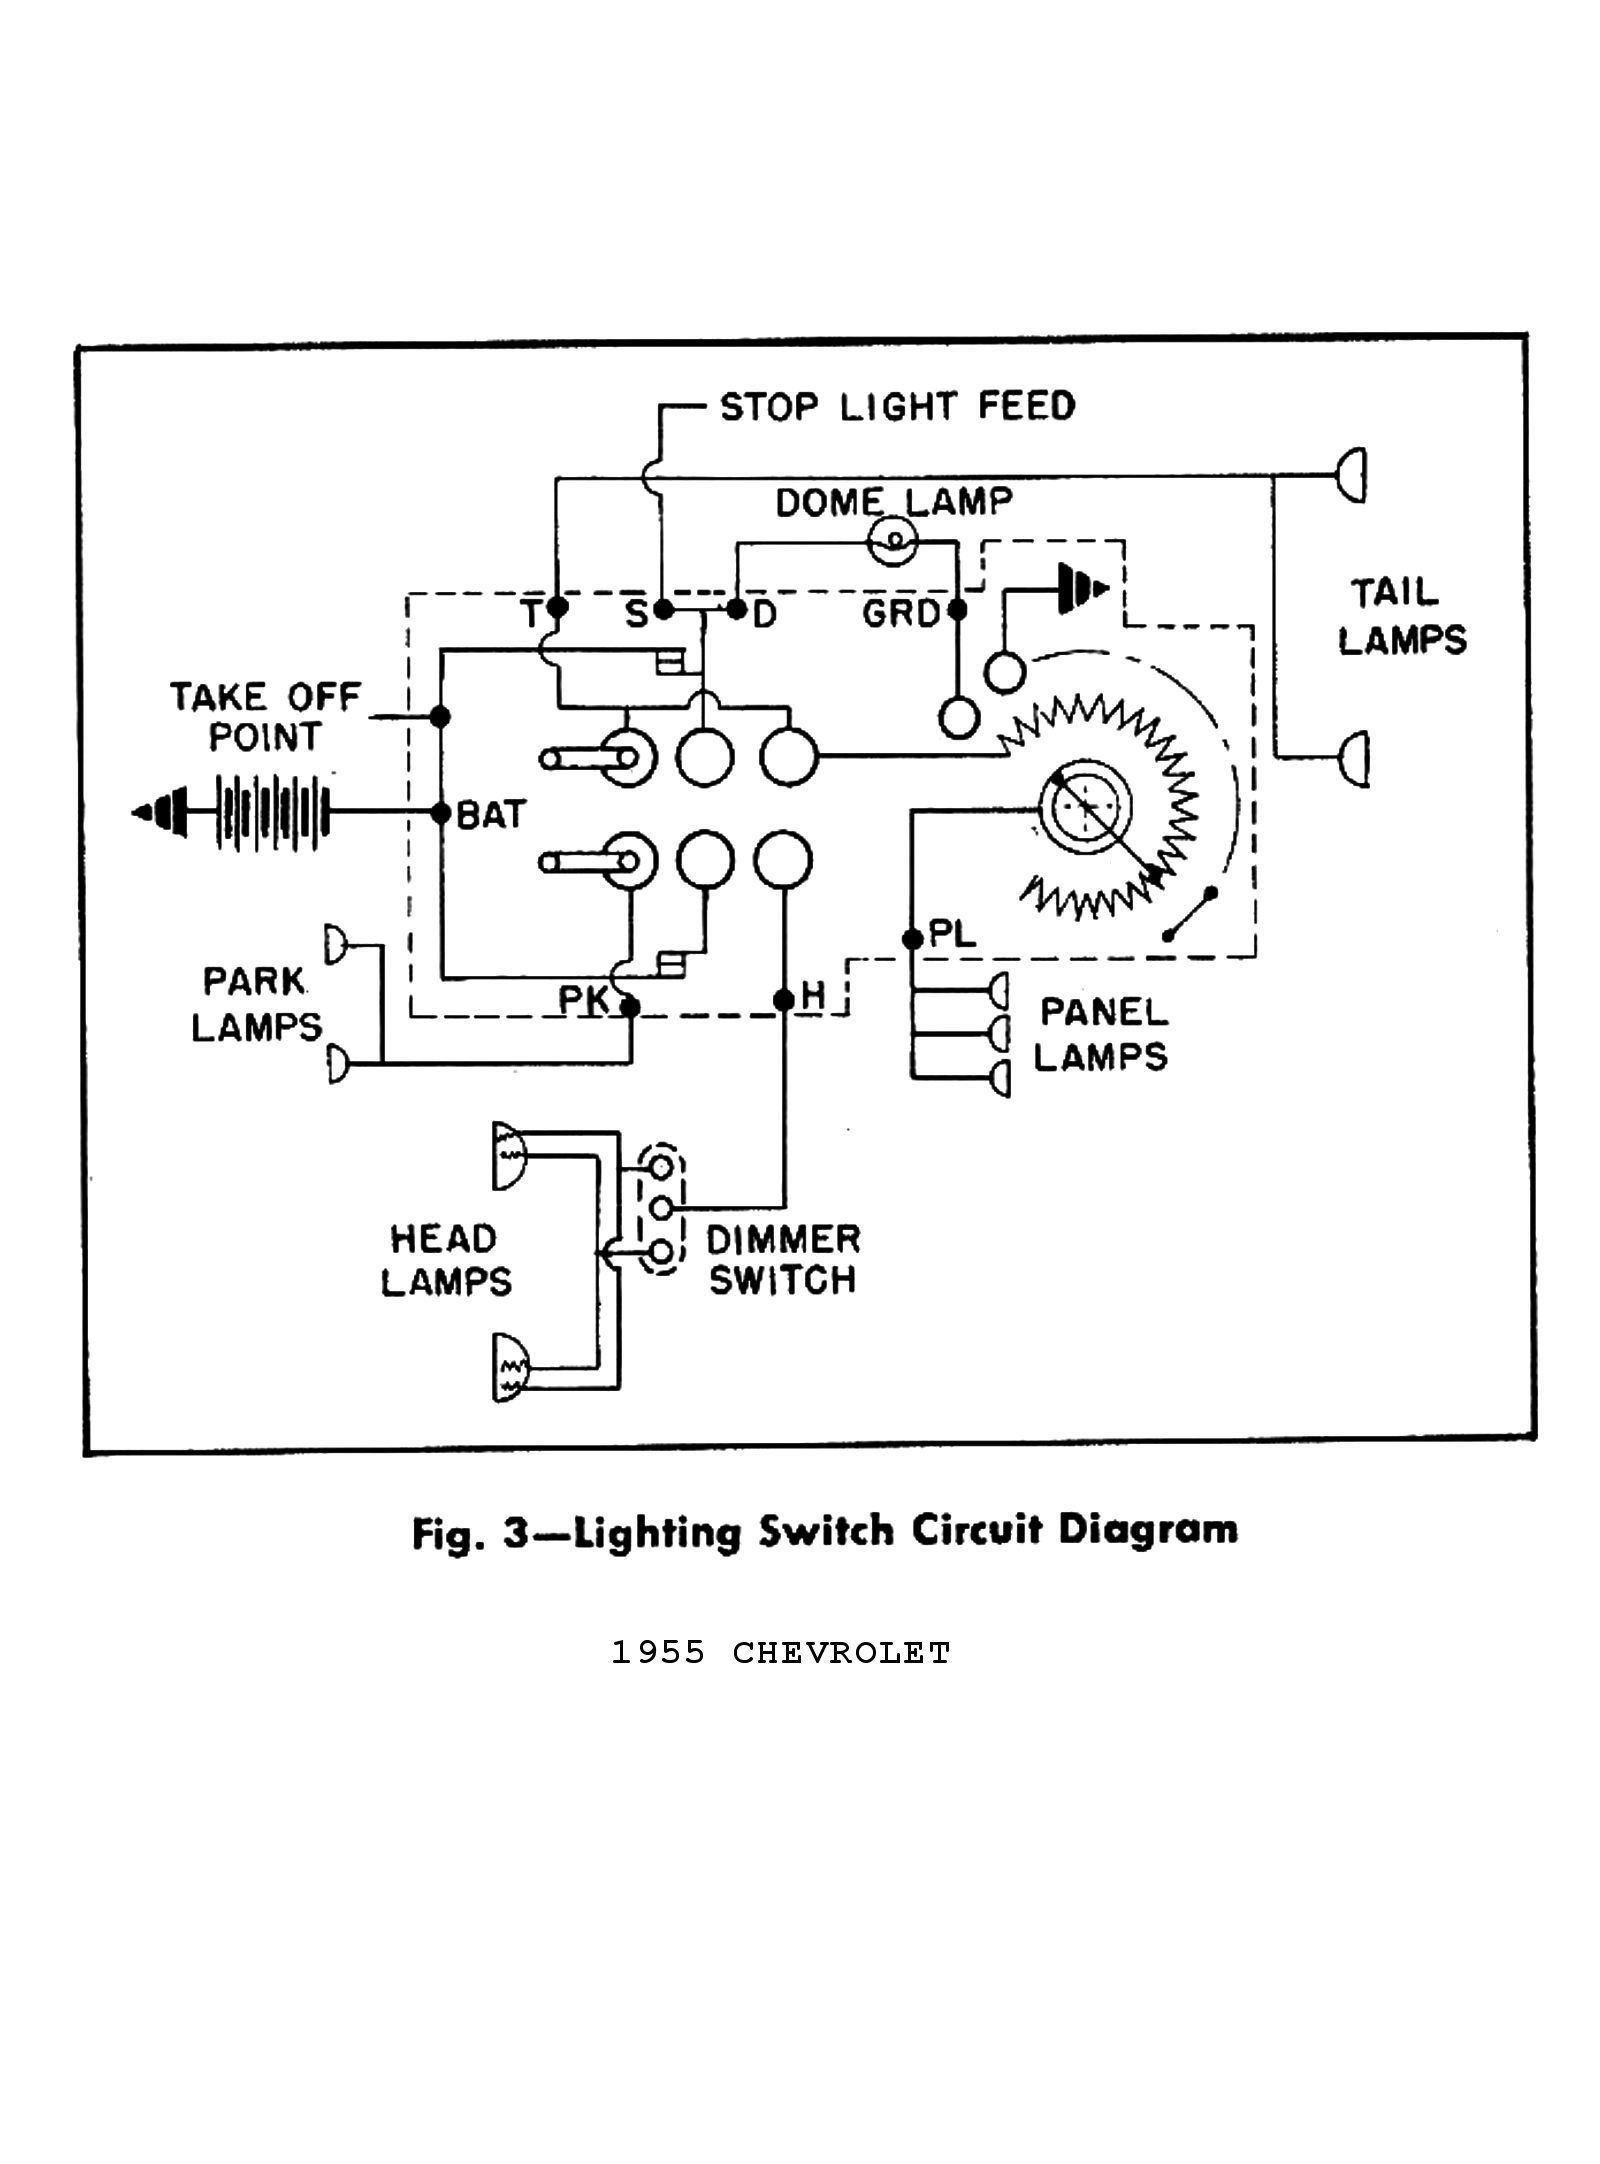 universal ignition switch wiring diagram inspirational 1955 Chevy Spark Plug Wiring Diagram